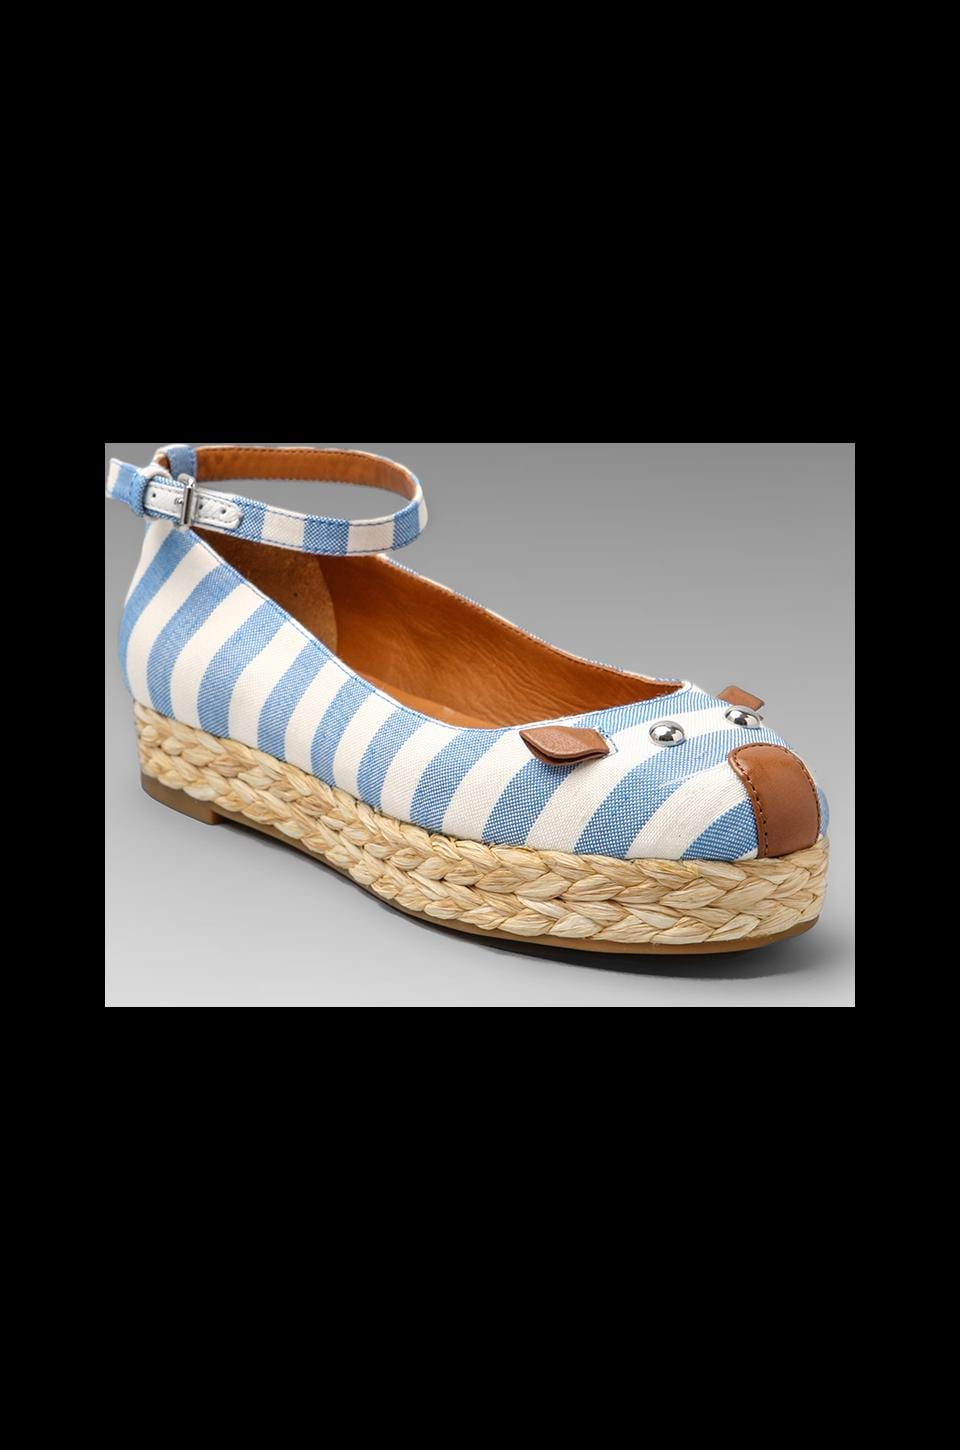 Marc by Marc Jacobs Striped Canvas Mouse Espadrille in Blue and Tan